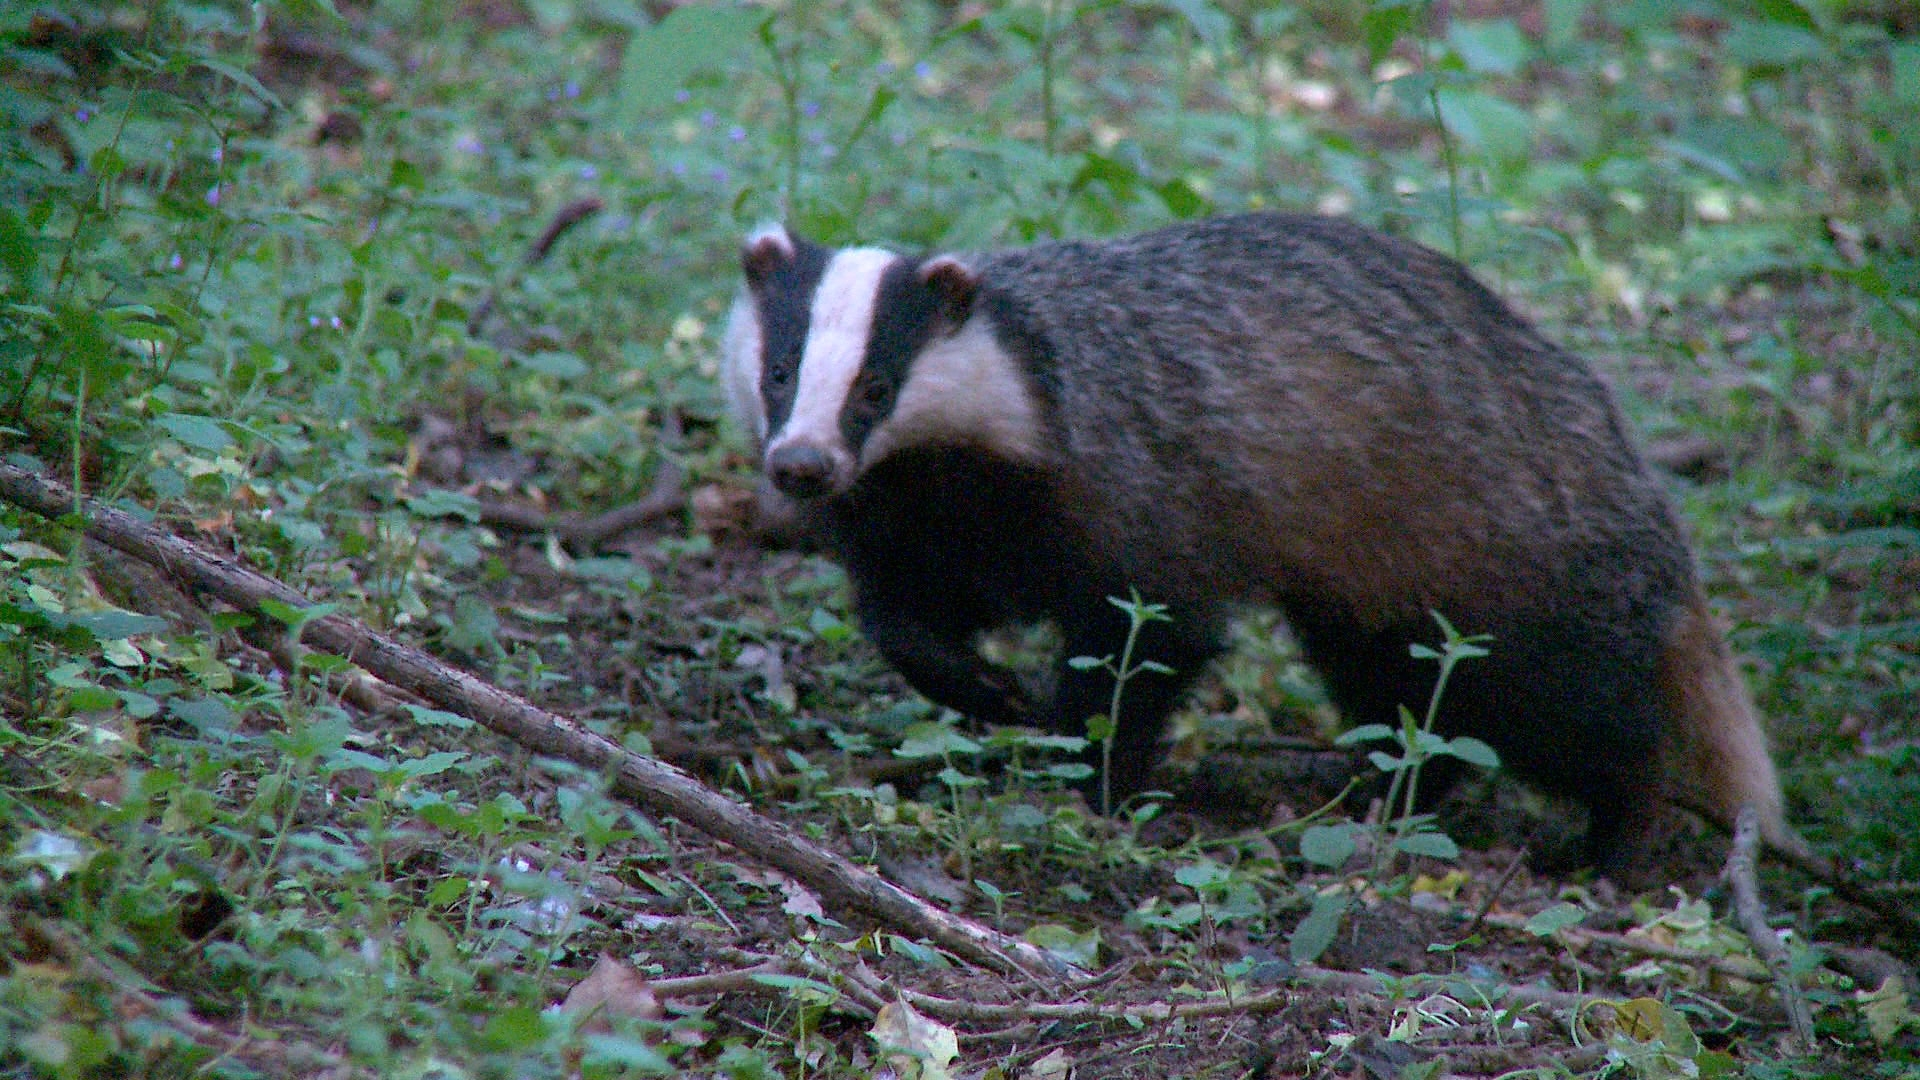 badger image